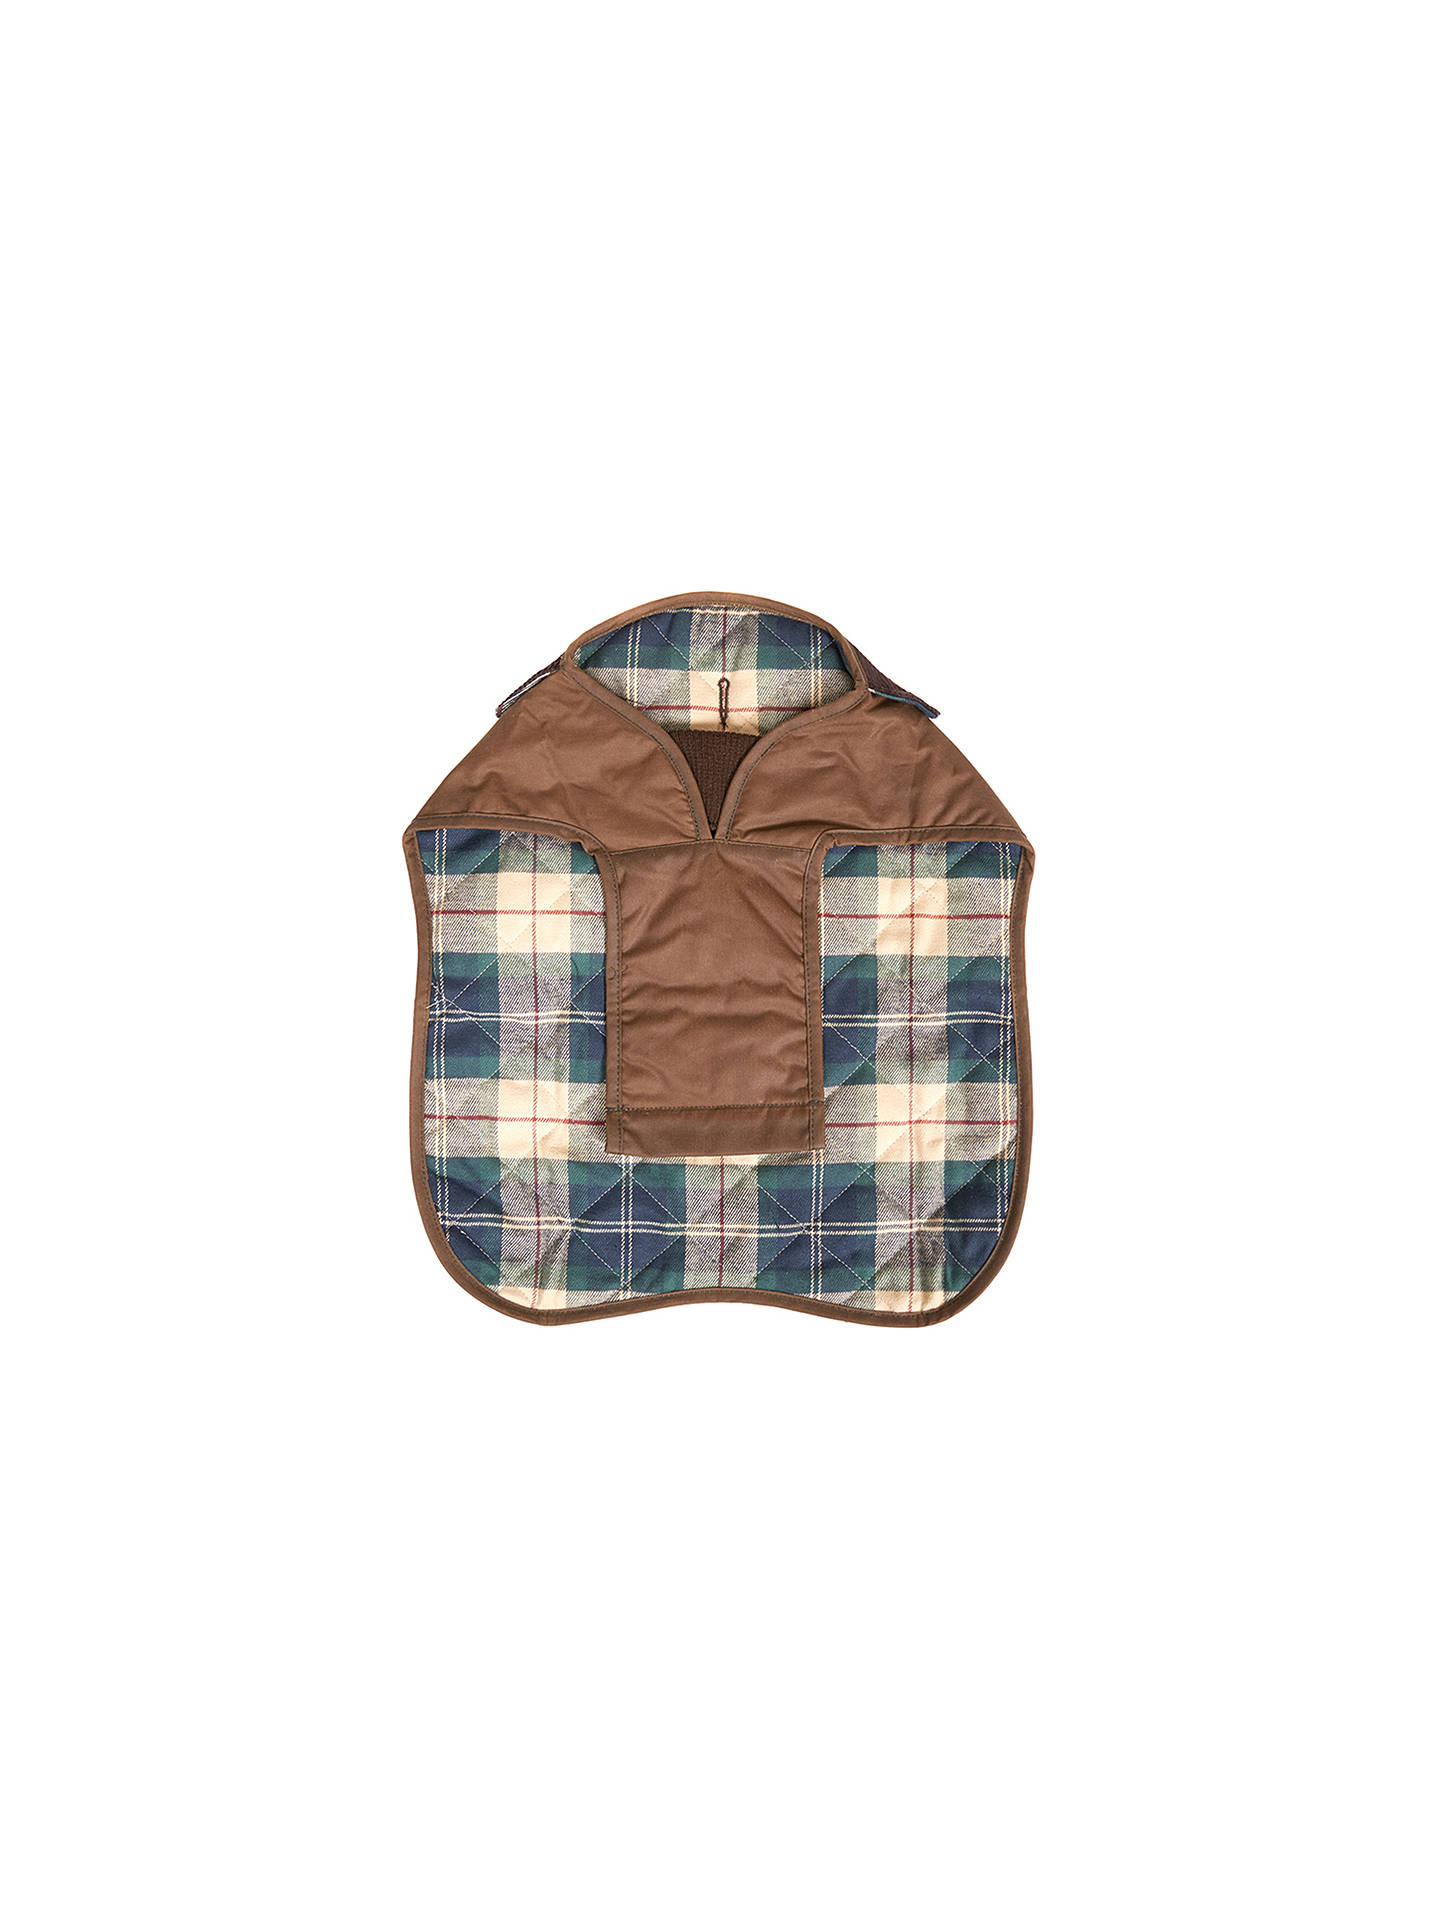 BuyBarbour Land Rover Wax Dog Coat, Sand, XS Online at johnlewis.com